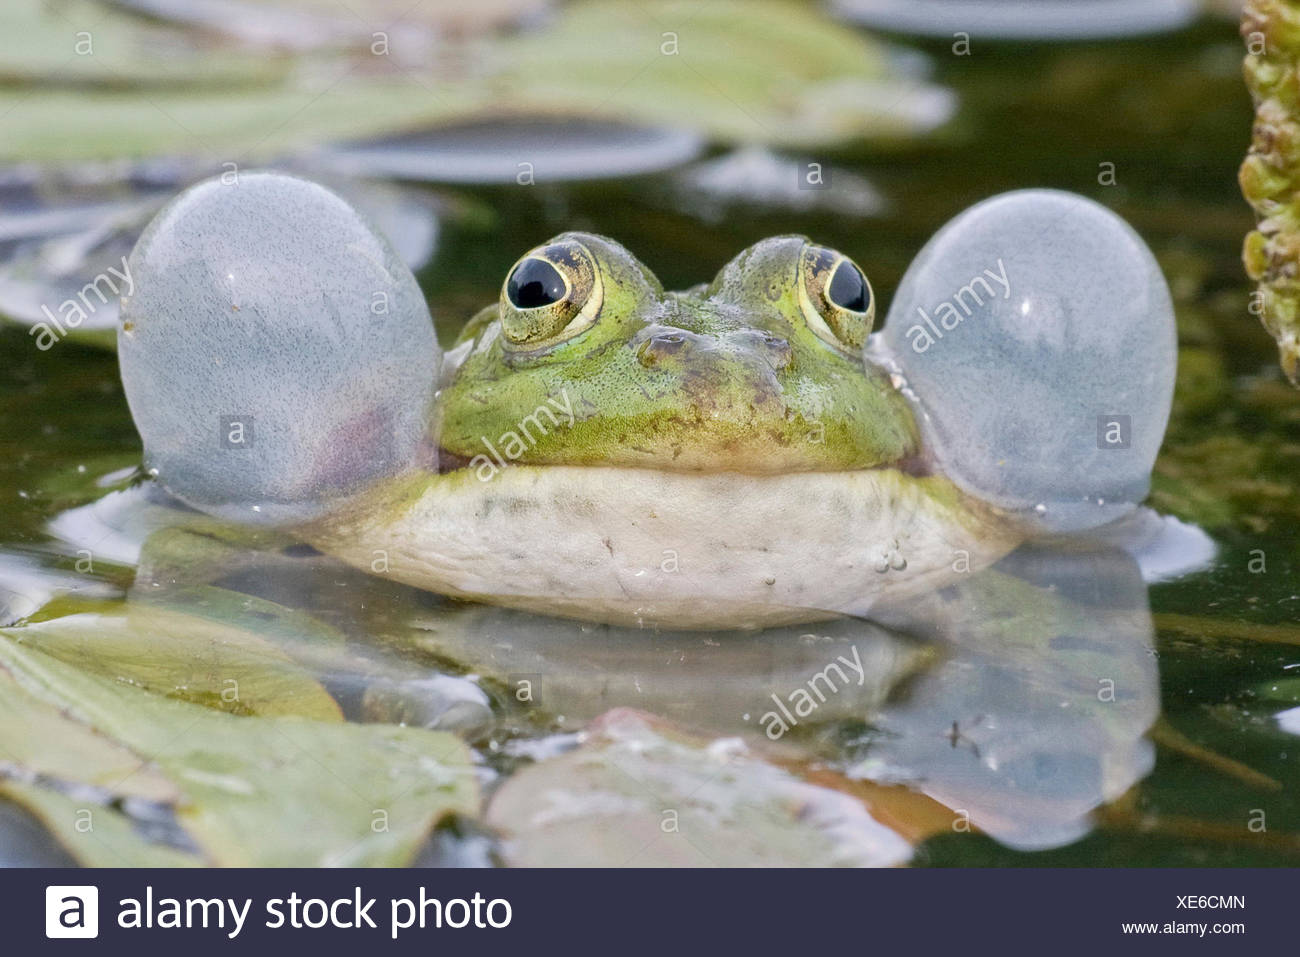 Common Water Frog (Rana esculenta) with vocal sacs, Hesse, Germany - Stock Image